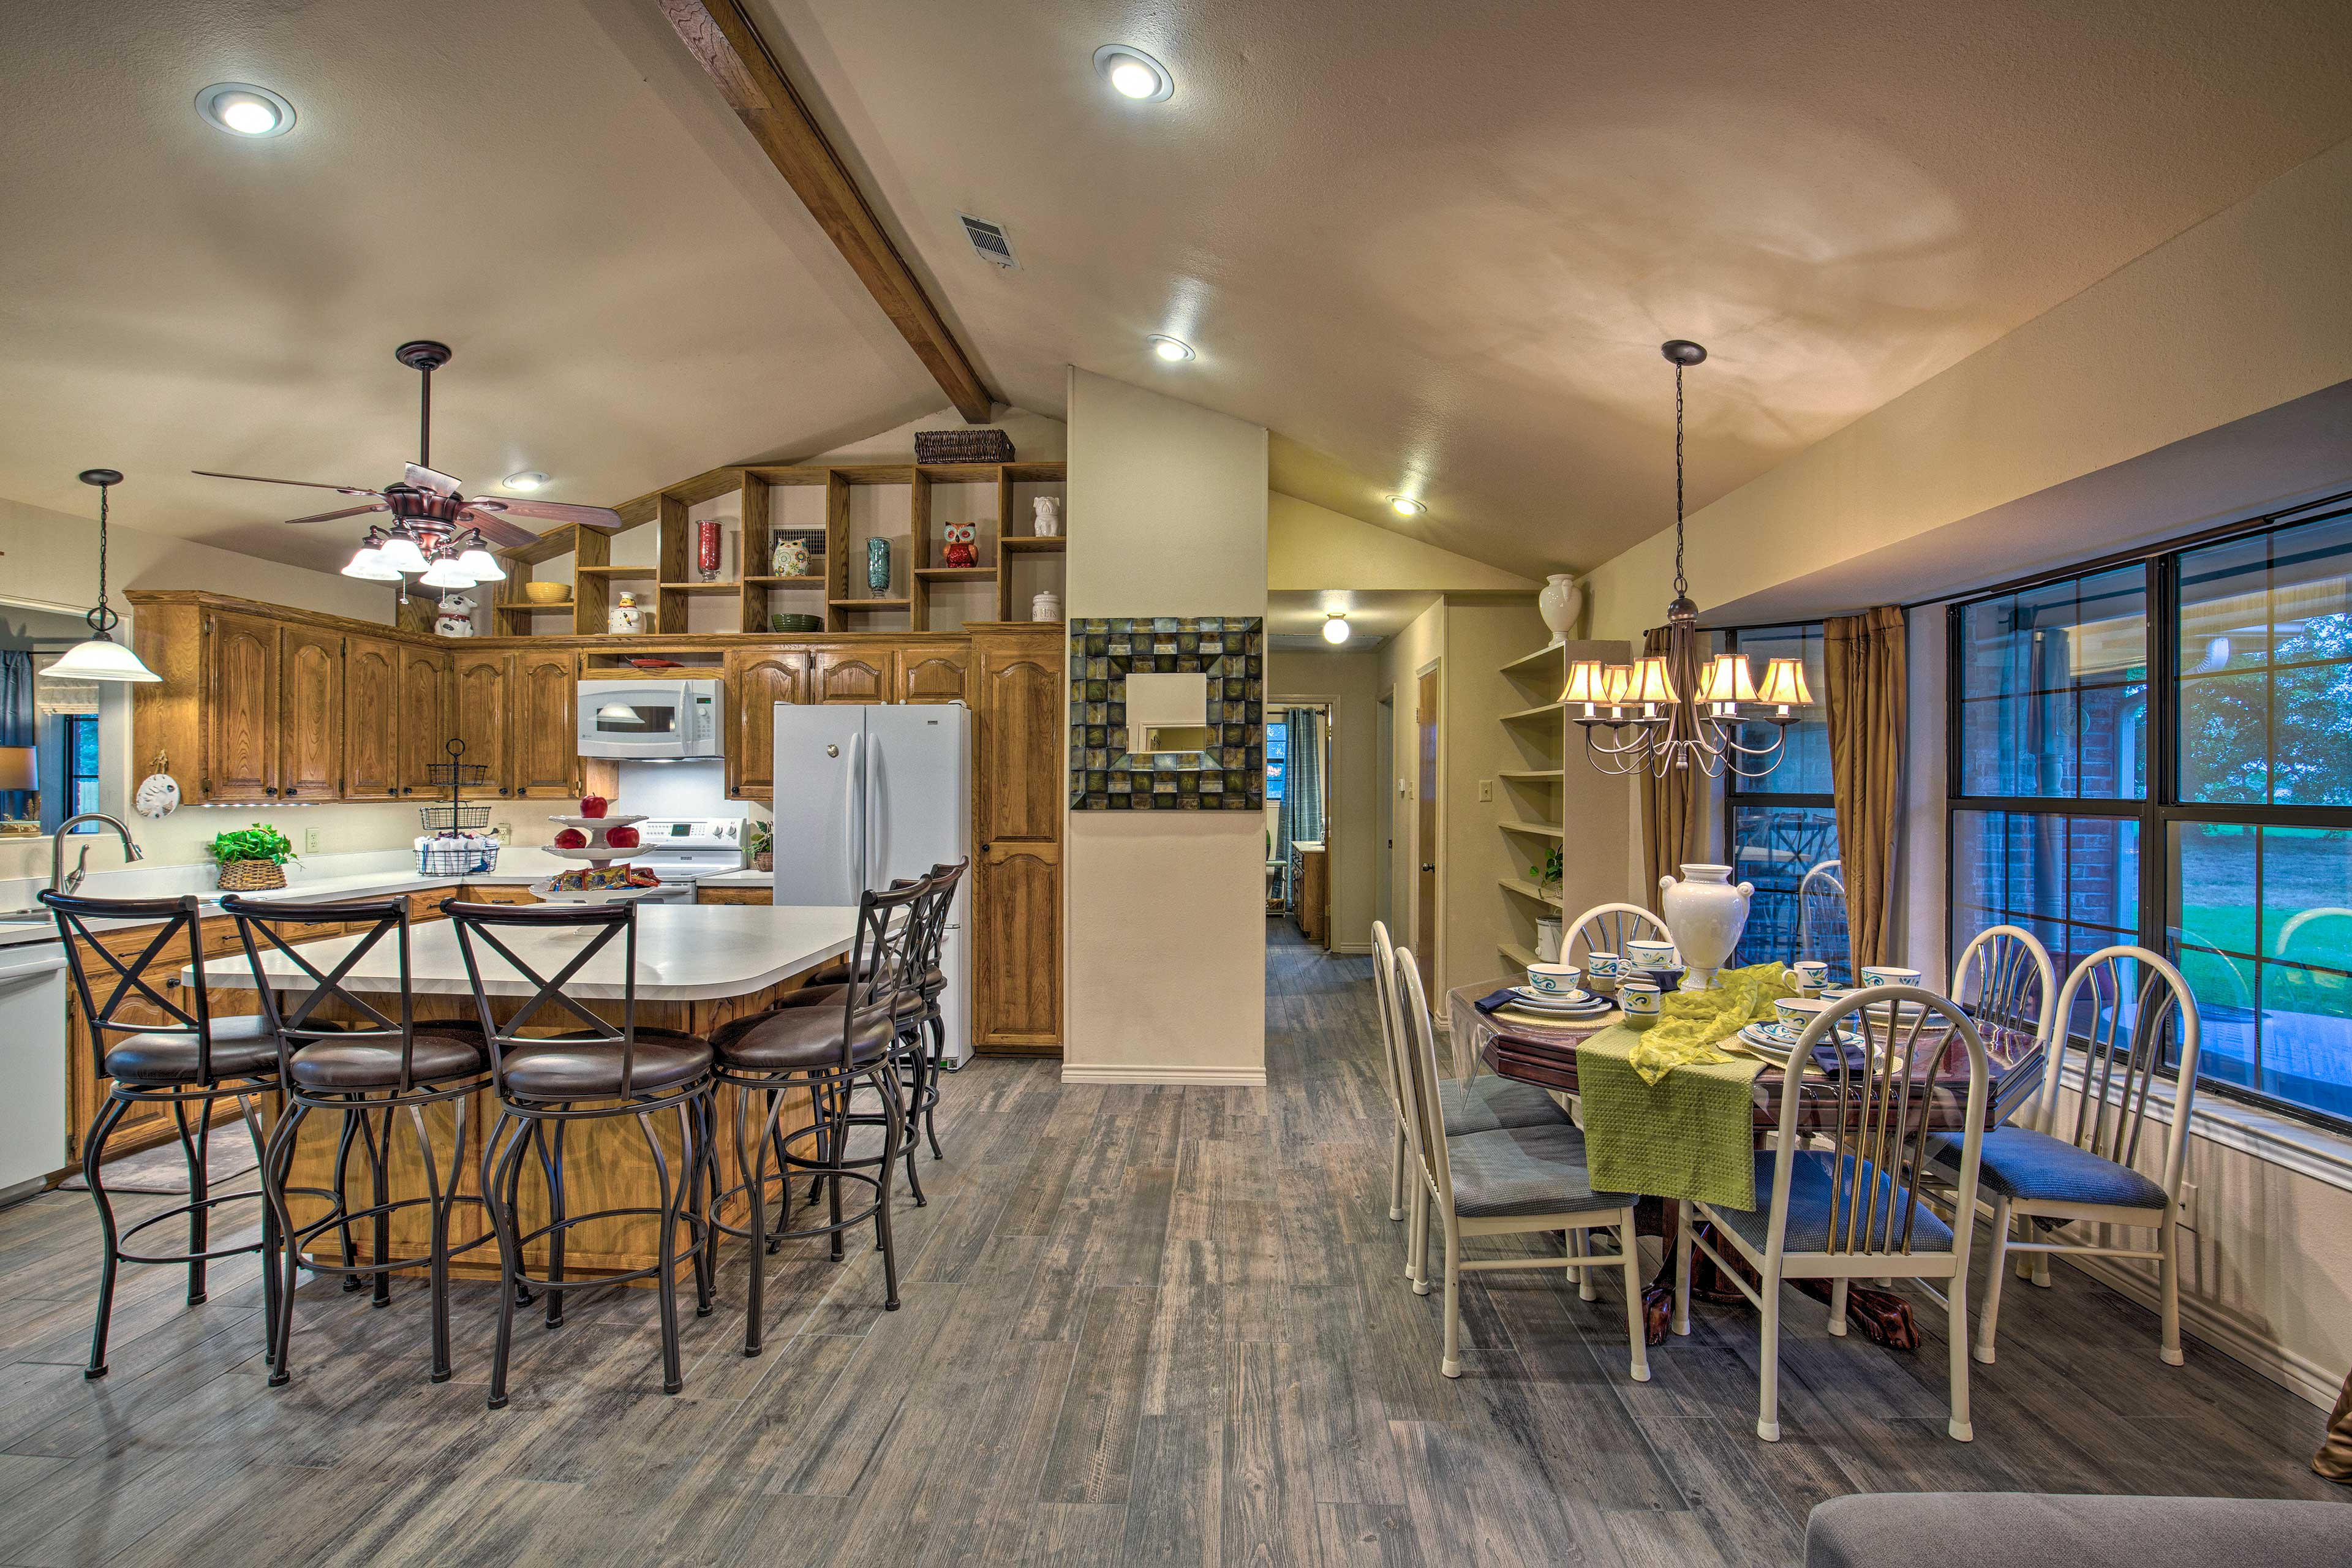 Choose from a seat at the dining table or breakfast bar!